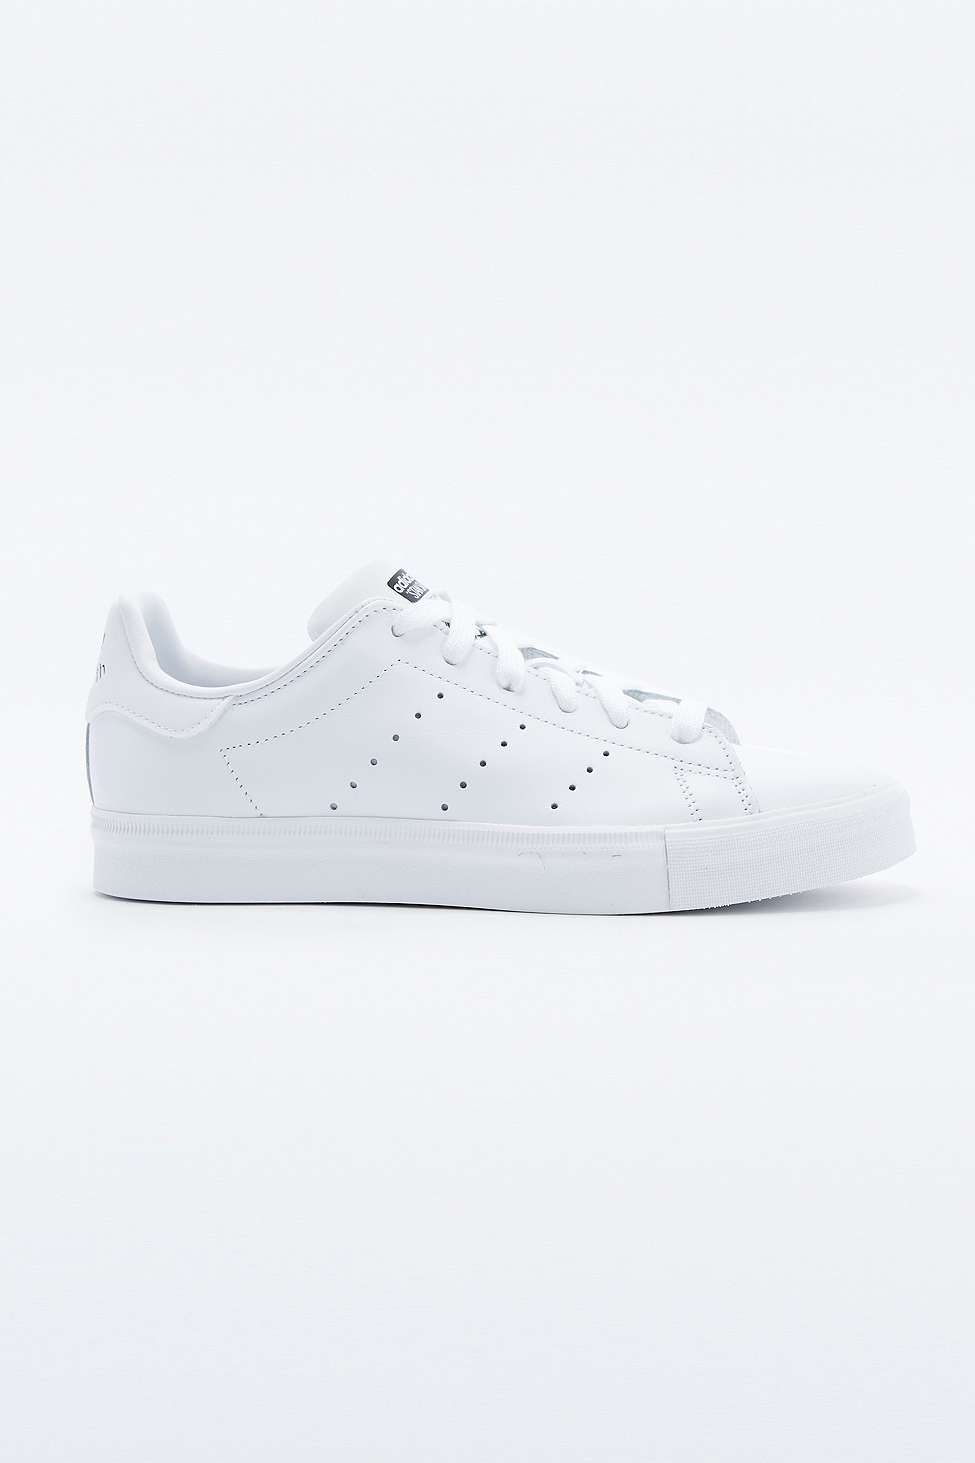 adidas Originals Stan Smith All White Trainers - Urban Outfitters